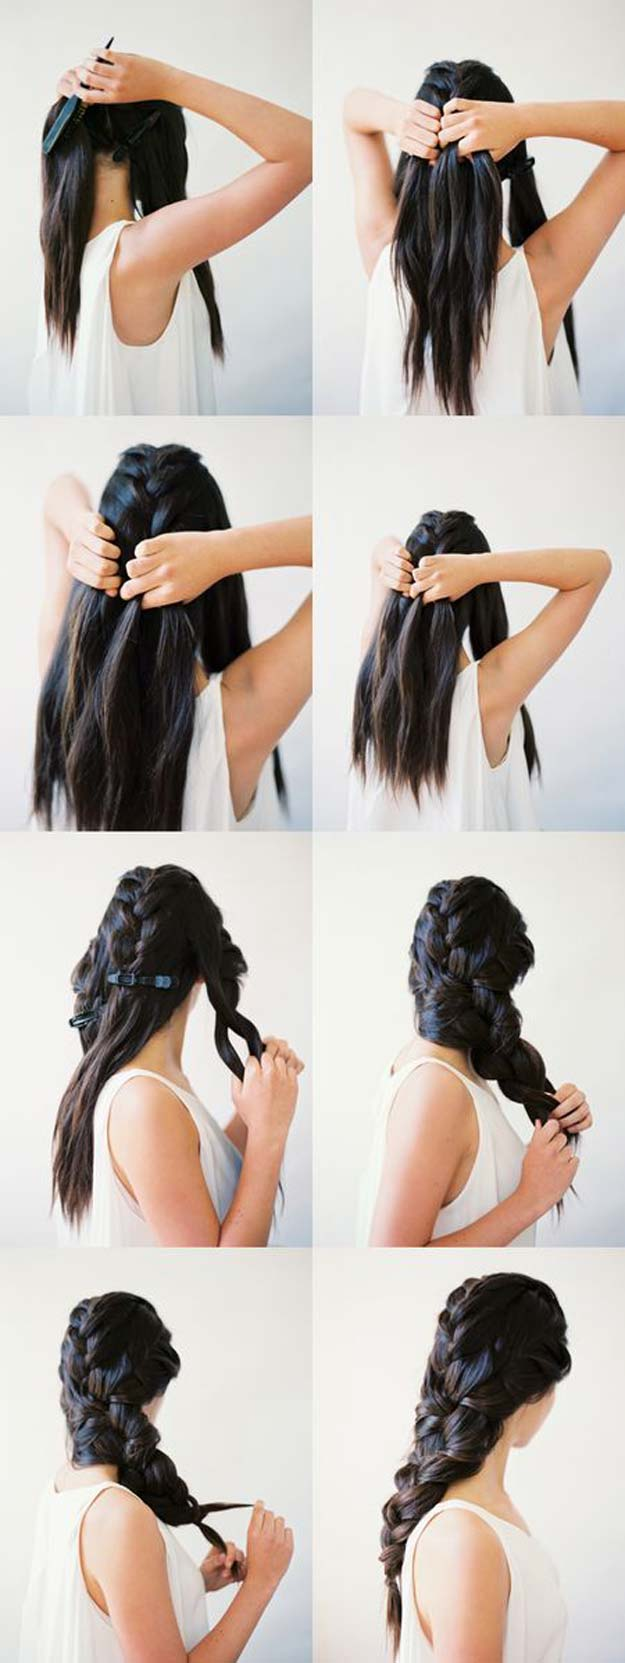 Cool and Easy DIY Hairstyles - Stylish Braids - Quick and Easy Ideas for Back to School Styles for Medium, Short and Long Hair - Fun Tips and Best Step by Step Tutorials for Teens, Prom, Weddings, Special Occasions and Work. Up dos, Braids, Top Knots and Buns, Super Summer Looks #hairstyles #hair #teens #easyhairstyles #diy #beauty